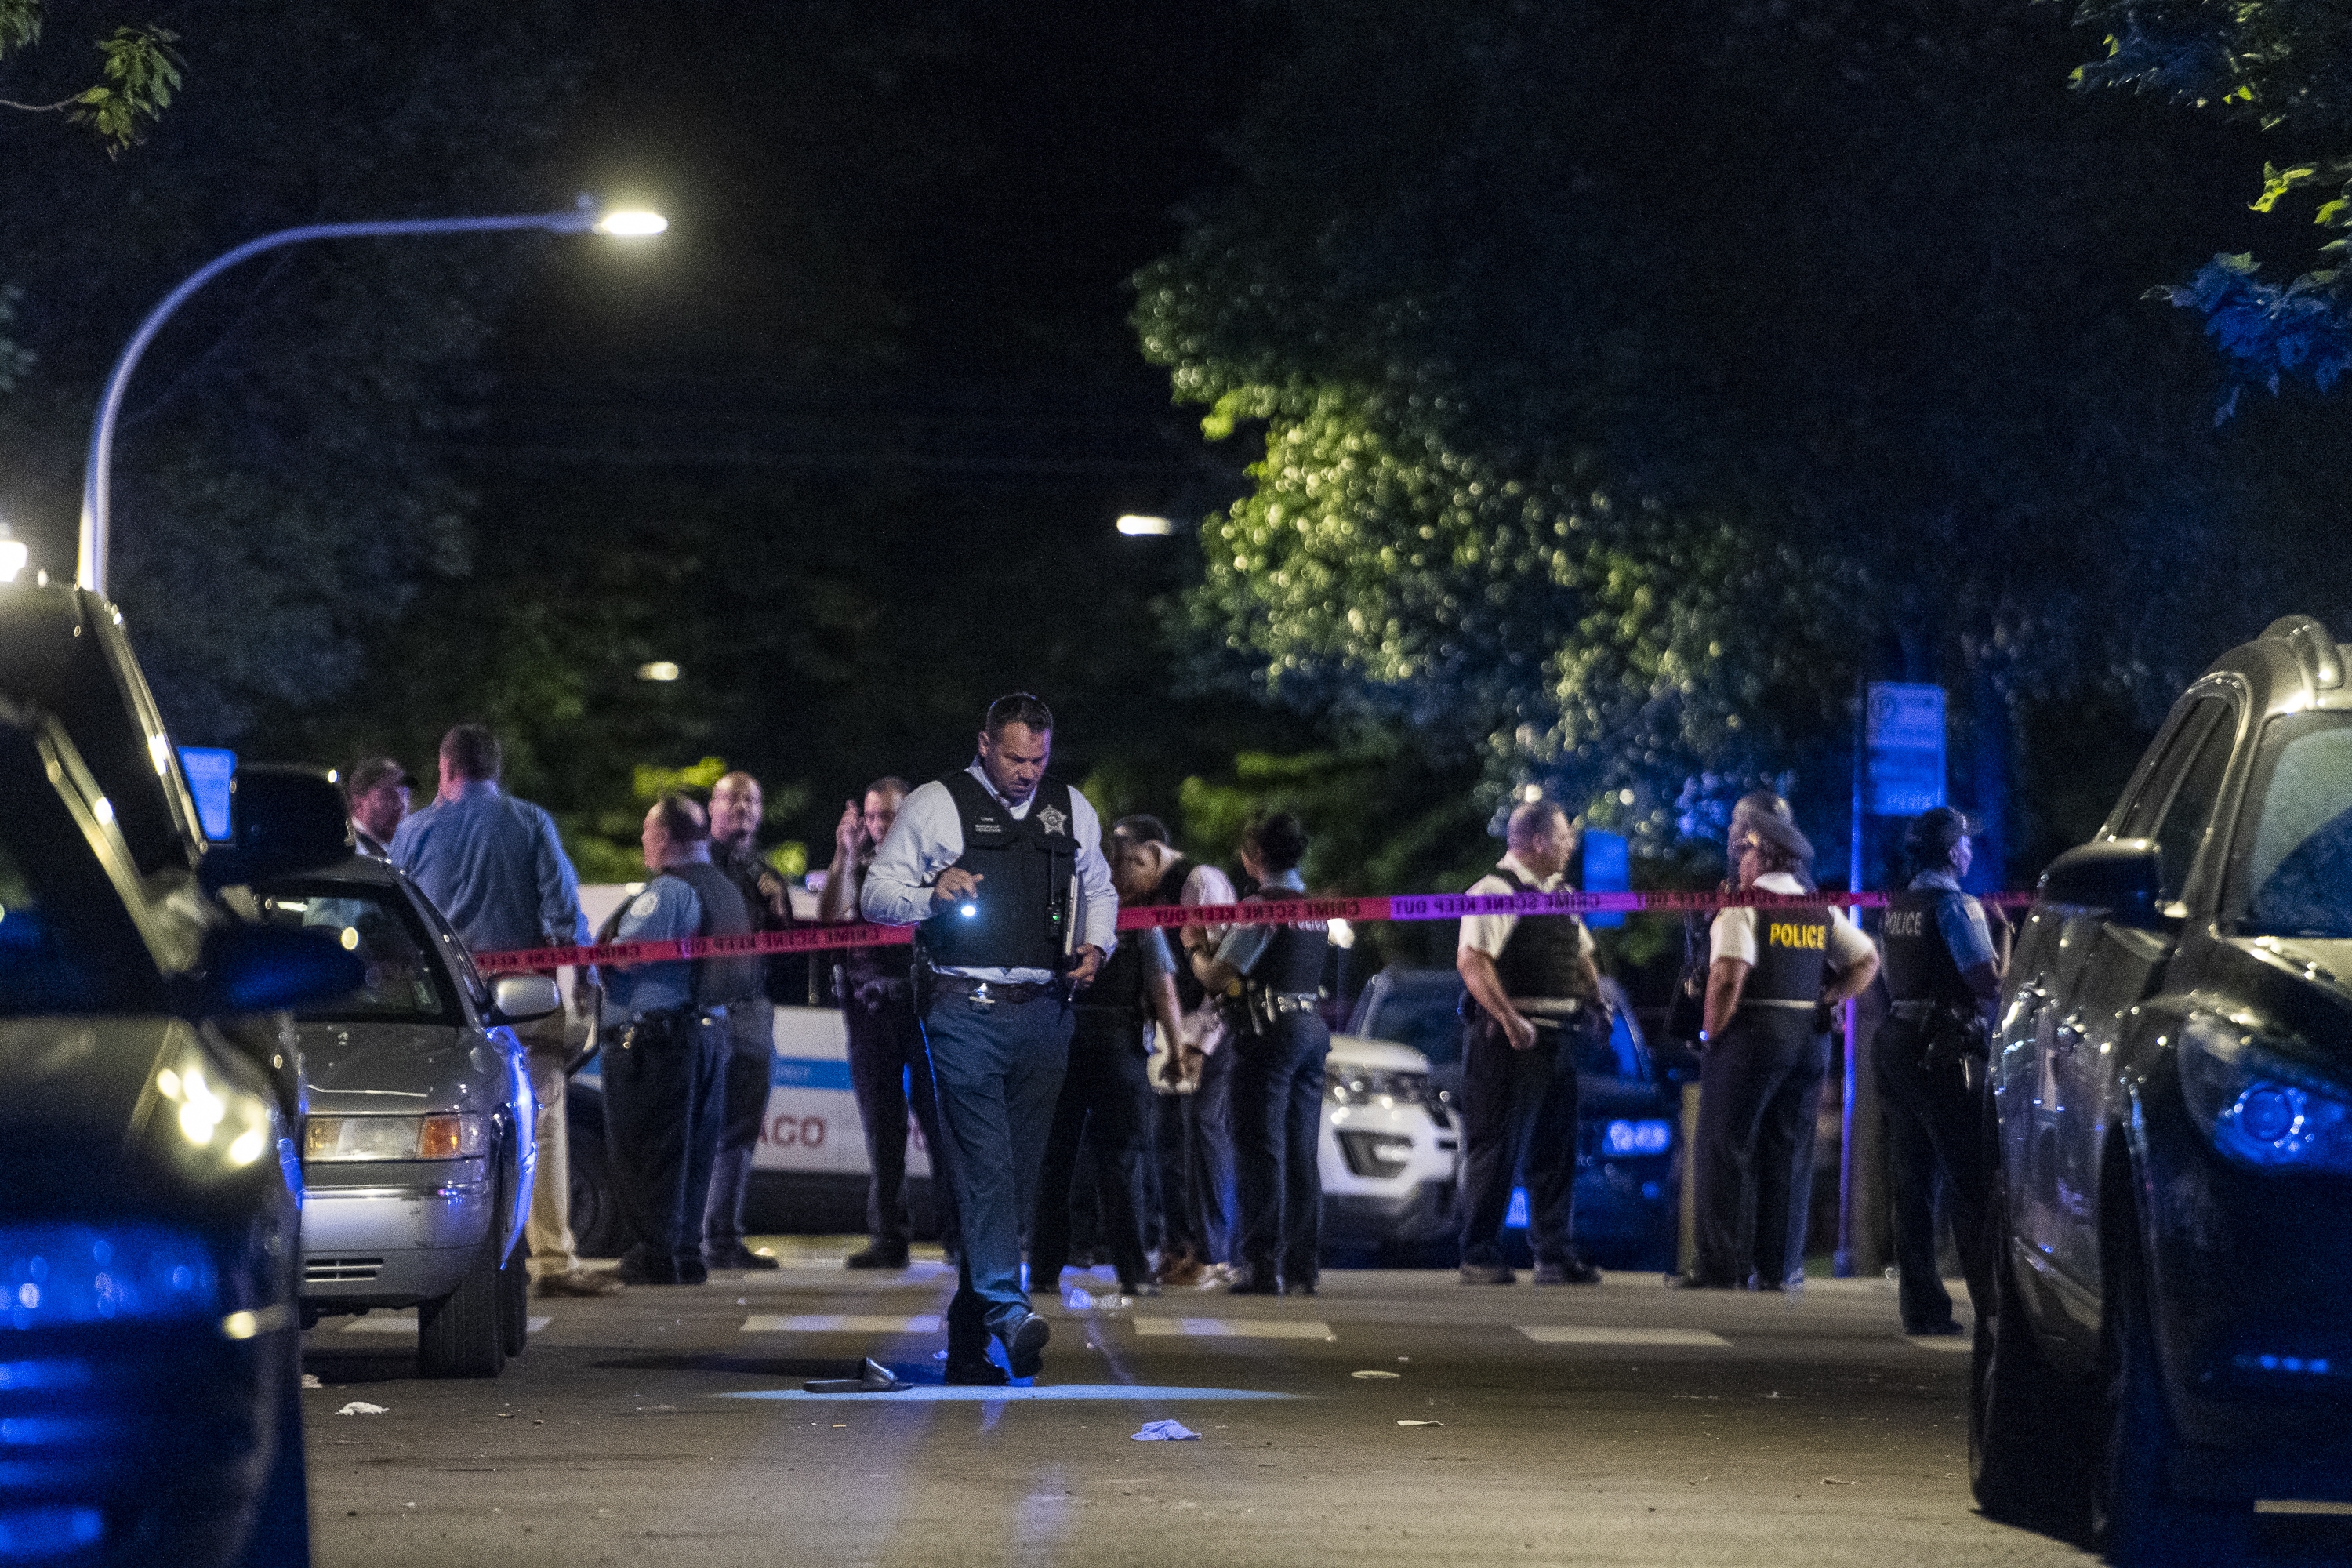 Chicago police work the scene where at least 8 people were shot in the 6300 block of South Artesian Ave in the Marquette Park neighborhood, Sunday, June 27, 2021.